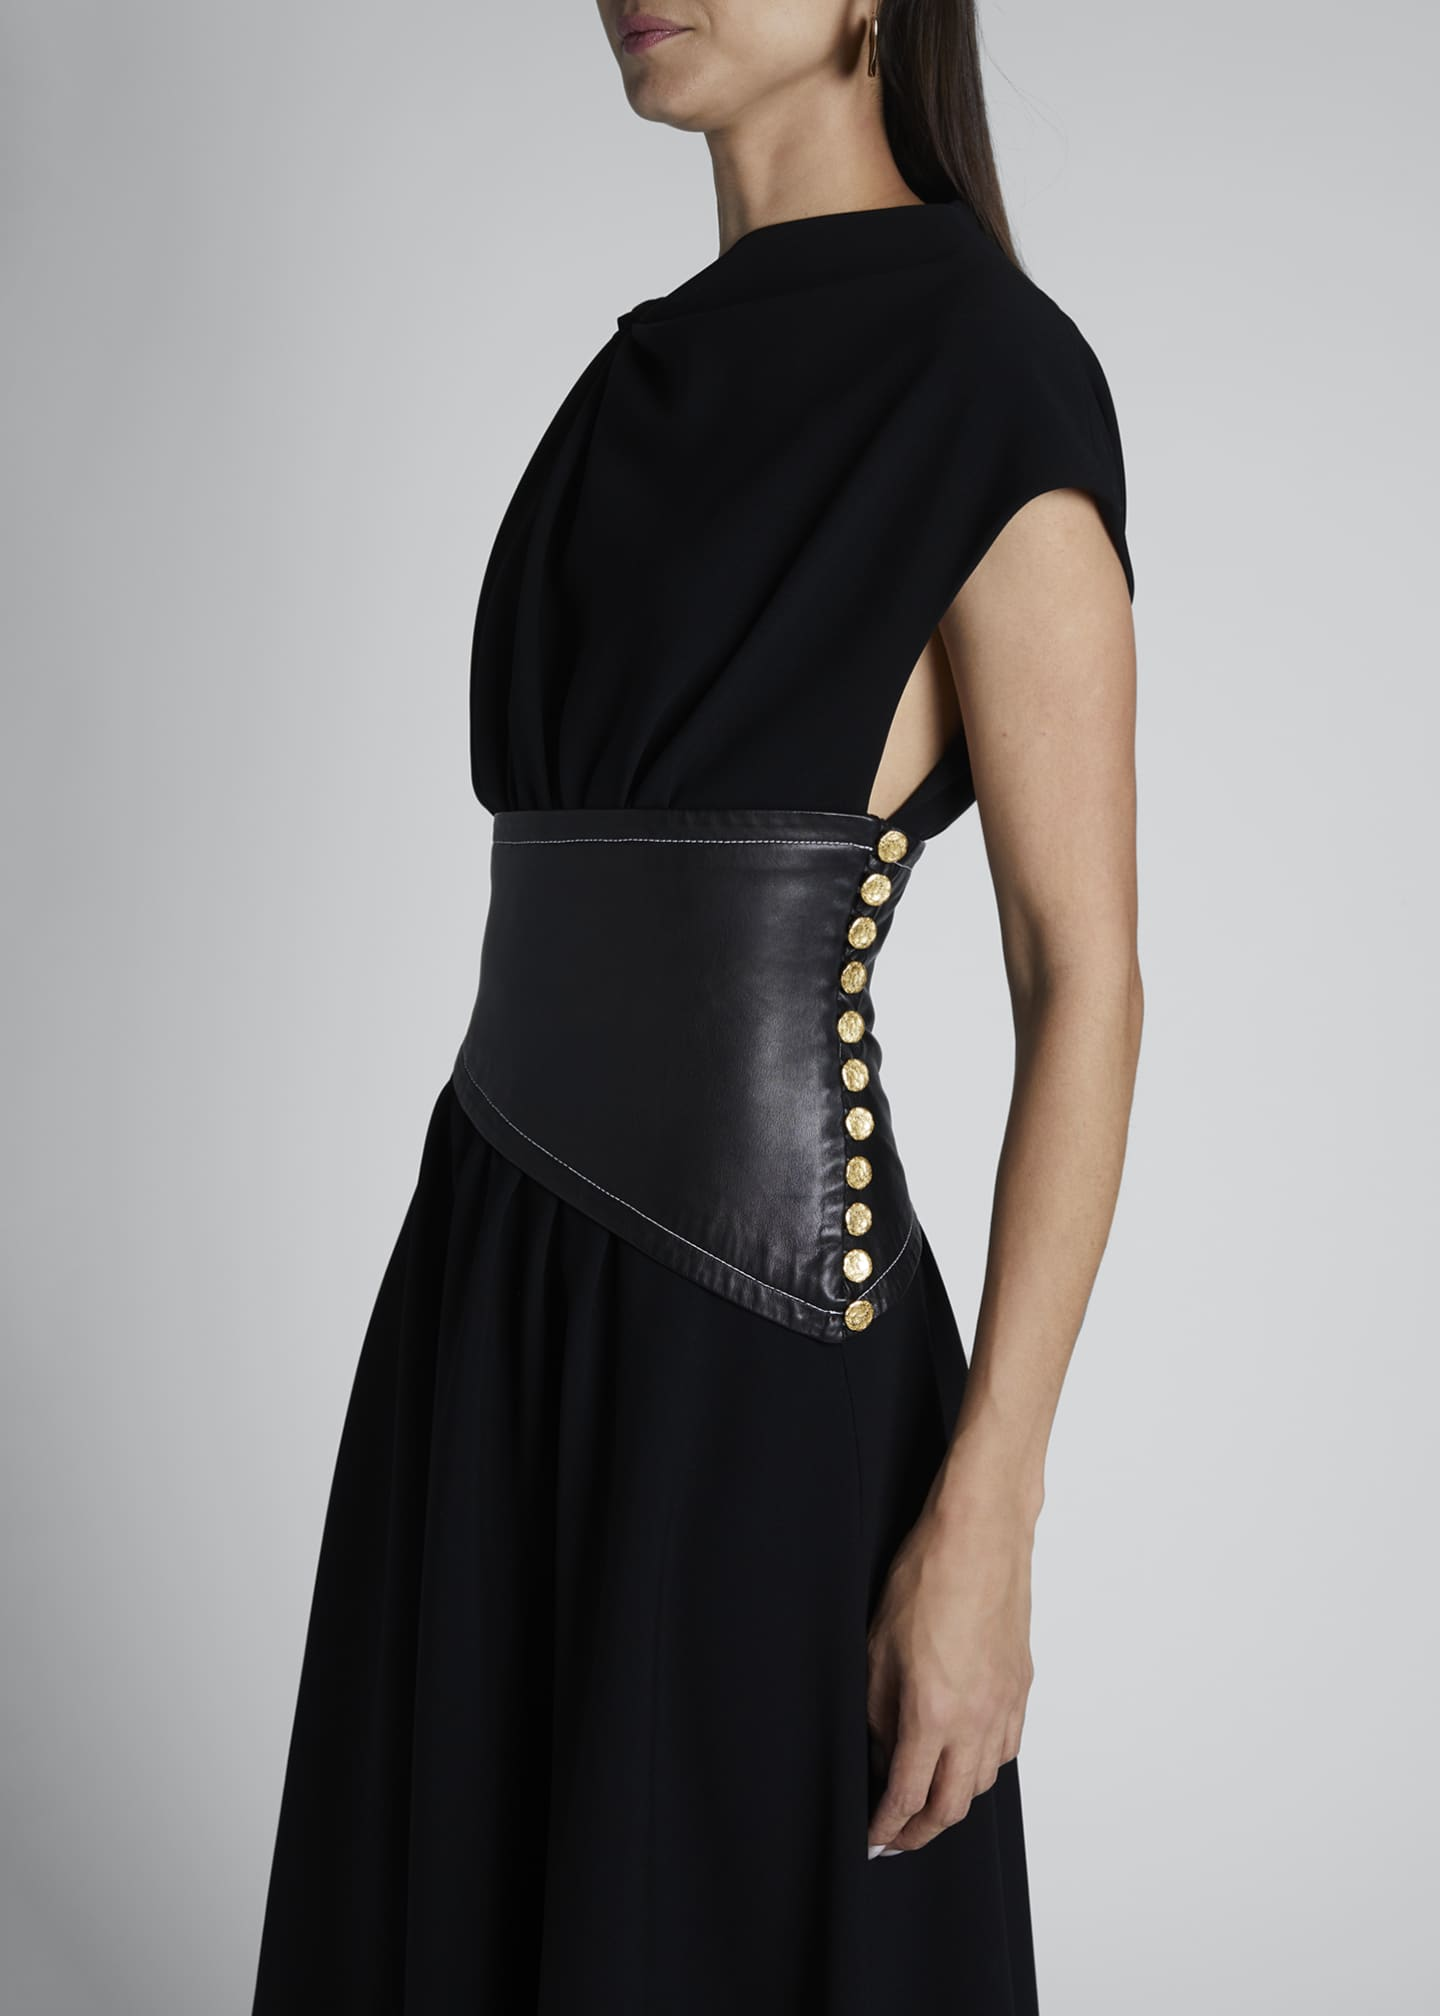 Image 3 of 3: Asymmetric Leather-Waist Dress